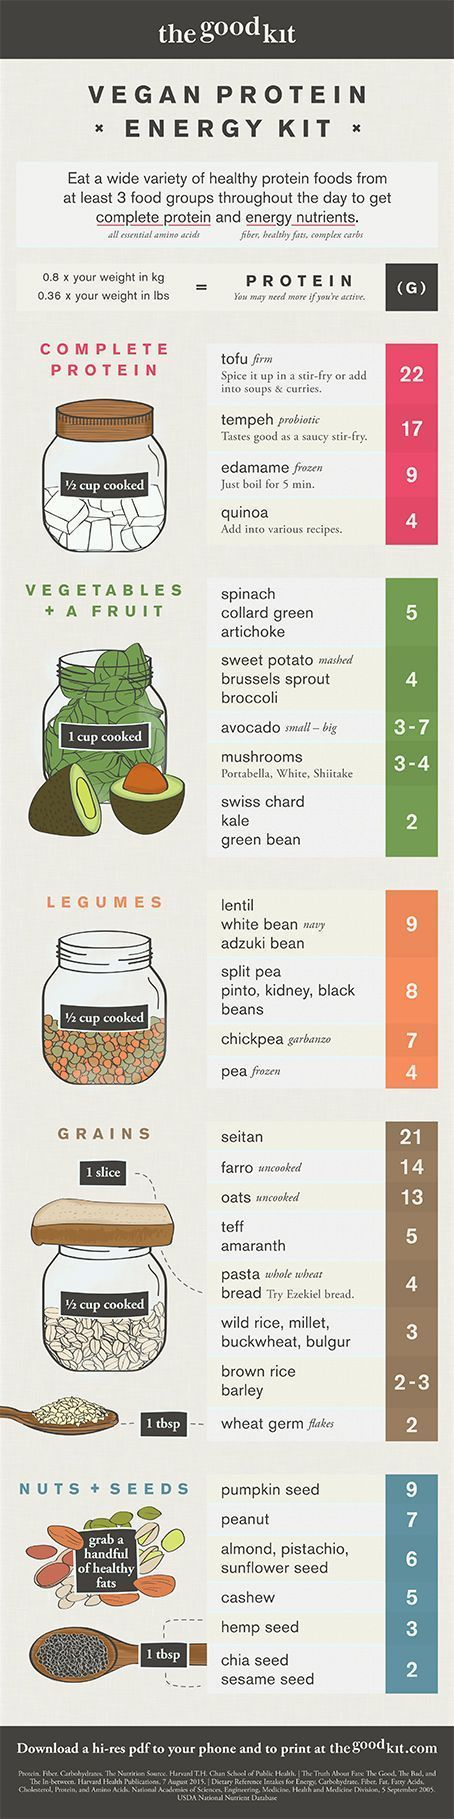 Vegan protein infographic for energy. List of plant based